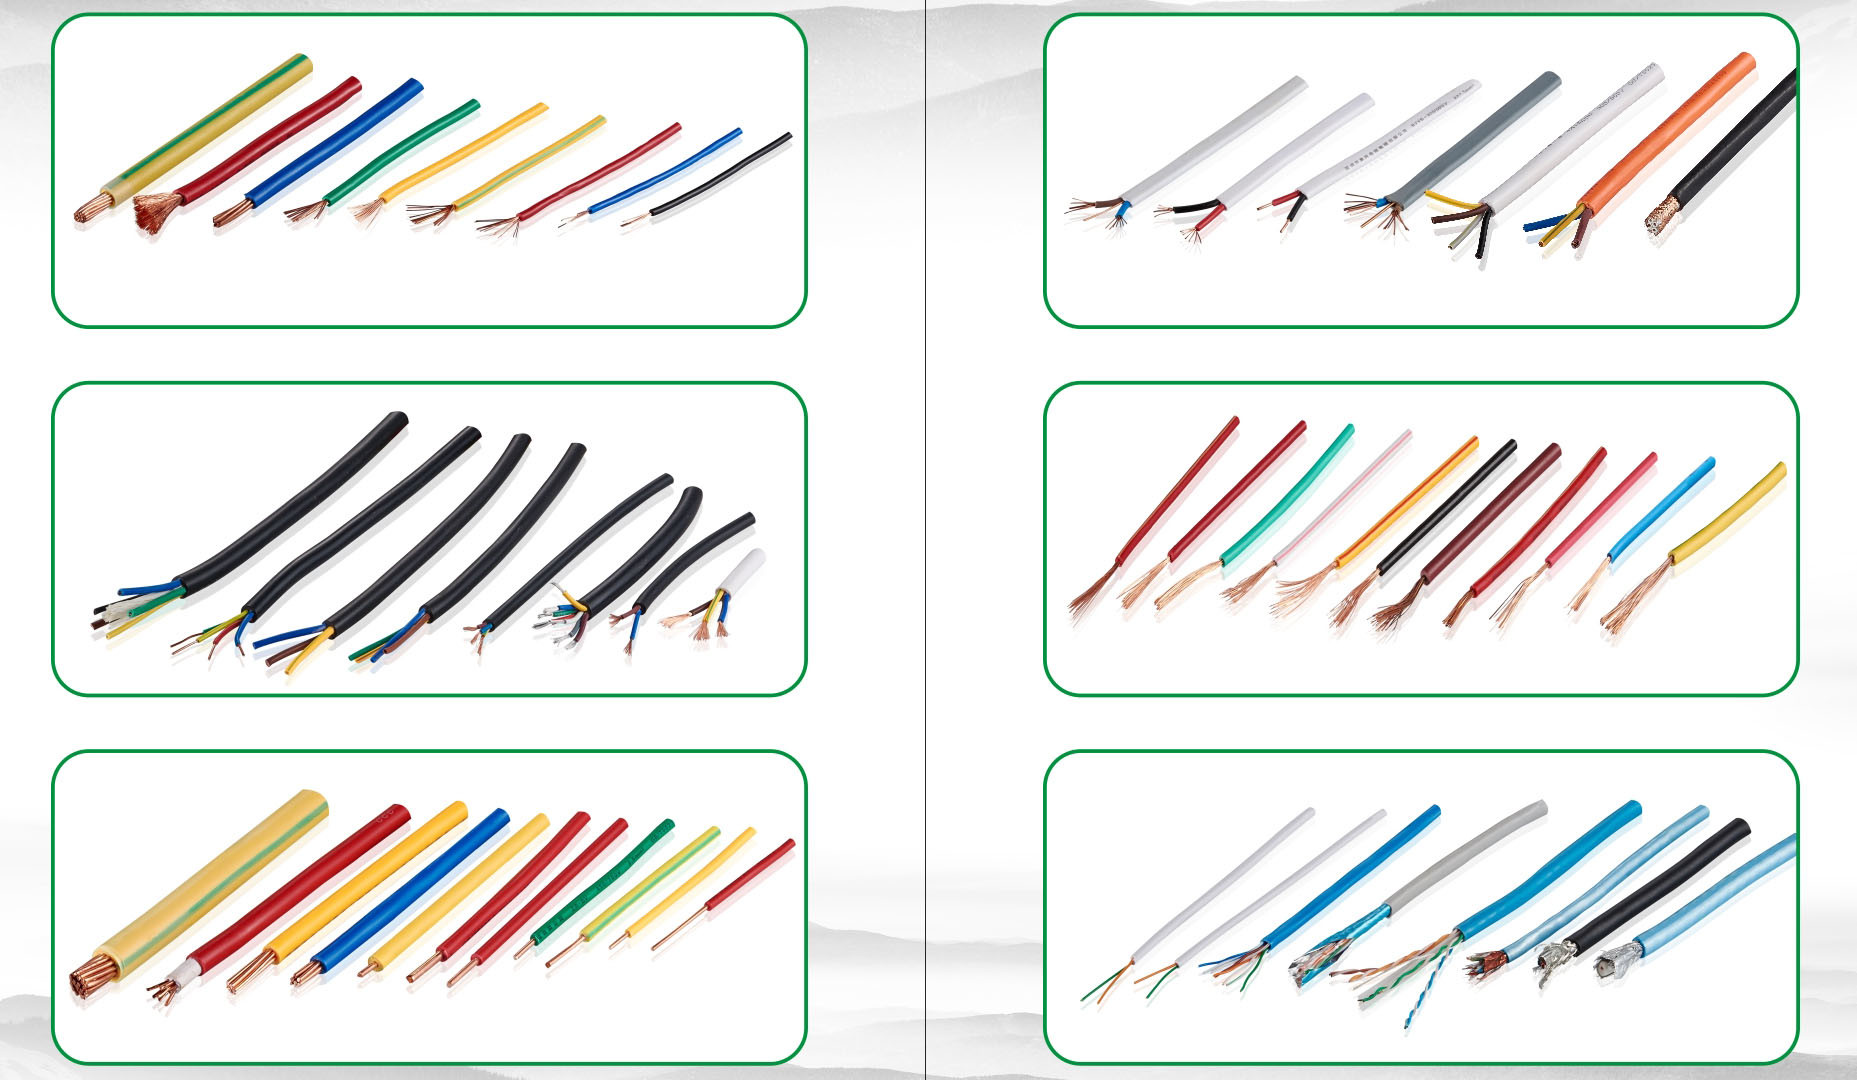 Electrical House Wiring Materials Wire Bv Pvc Insulated Cable For A Similar Products